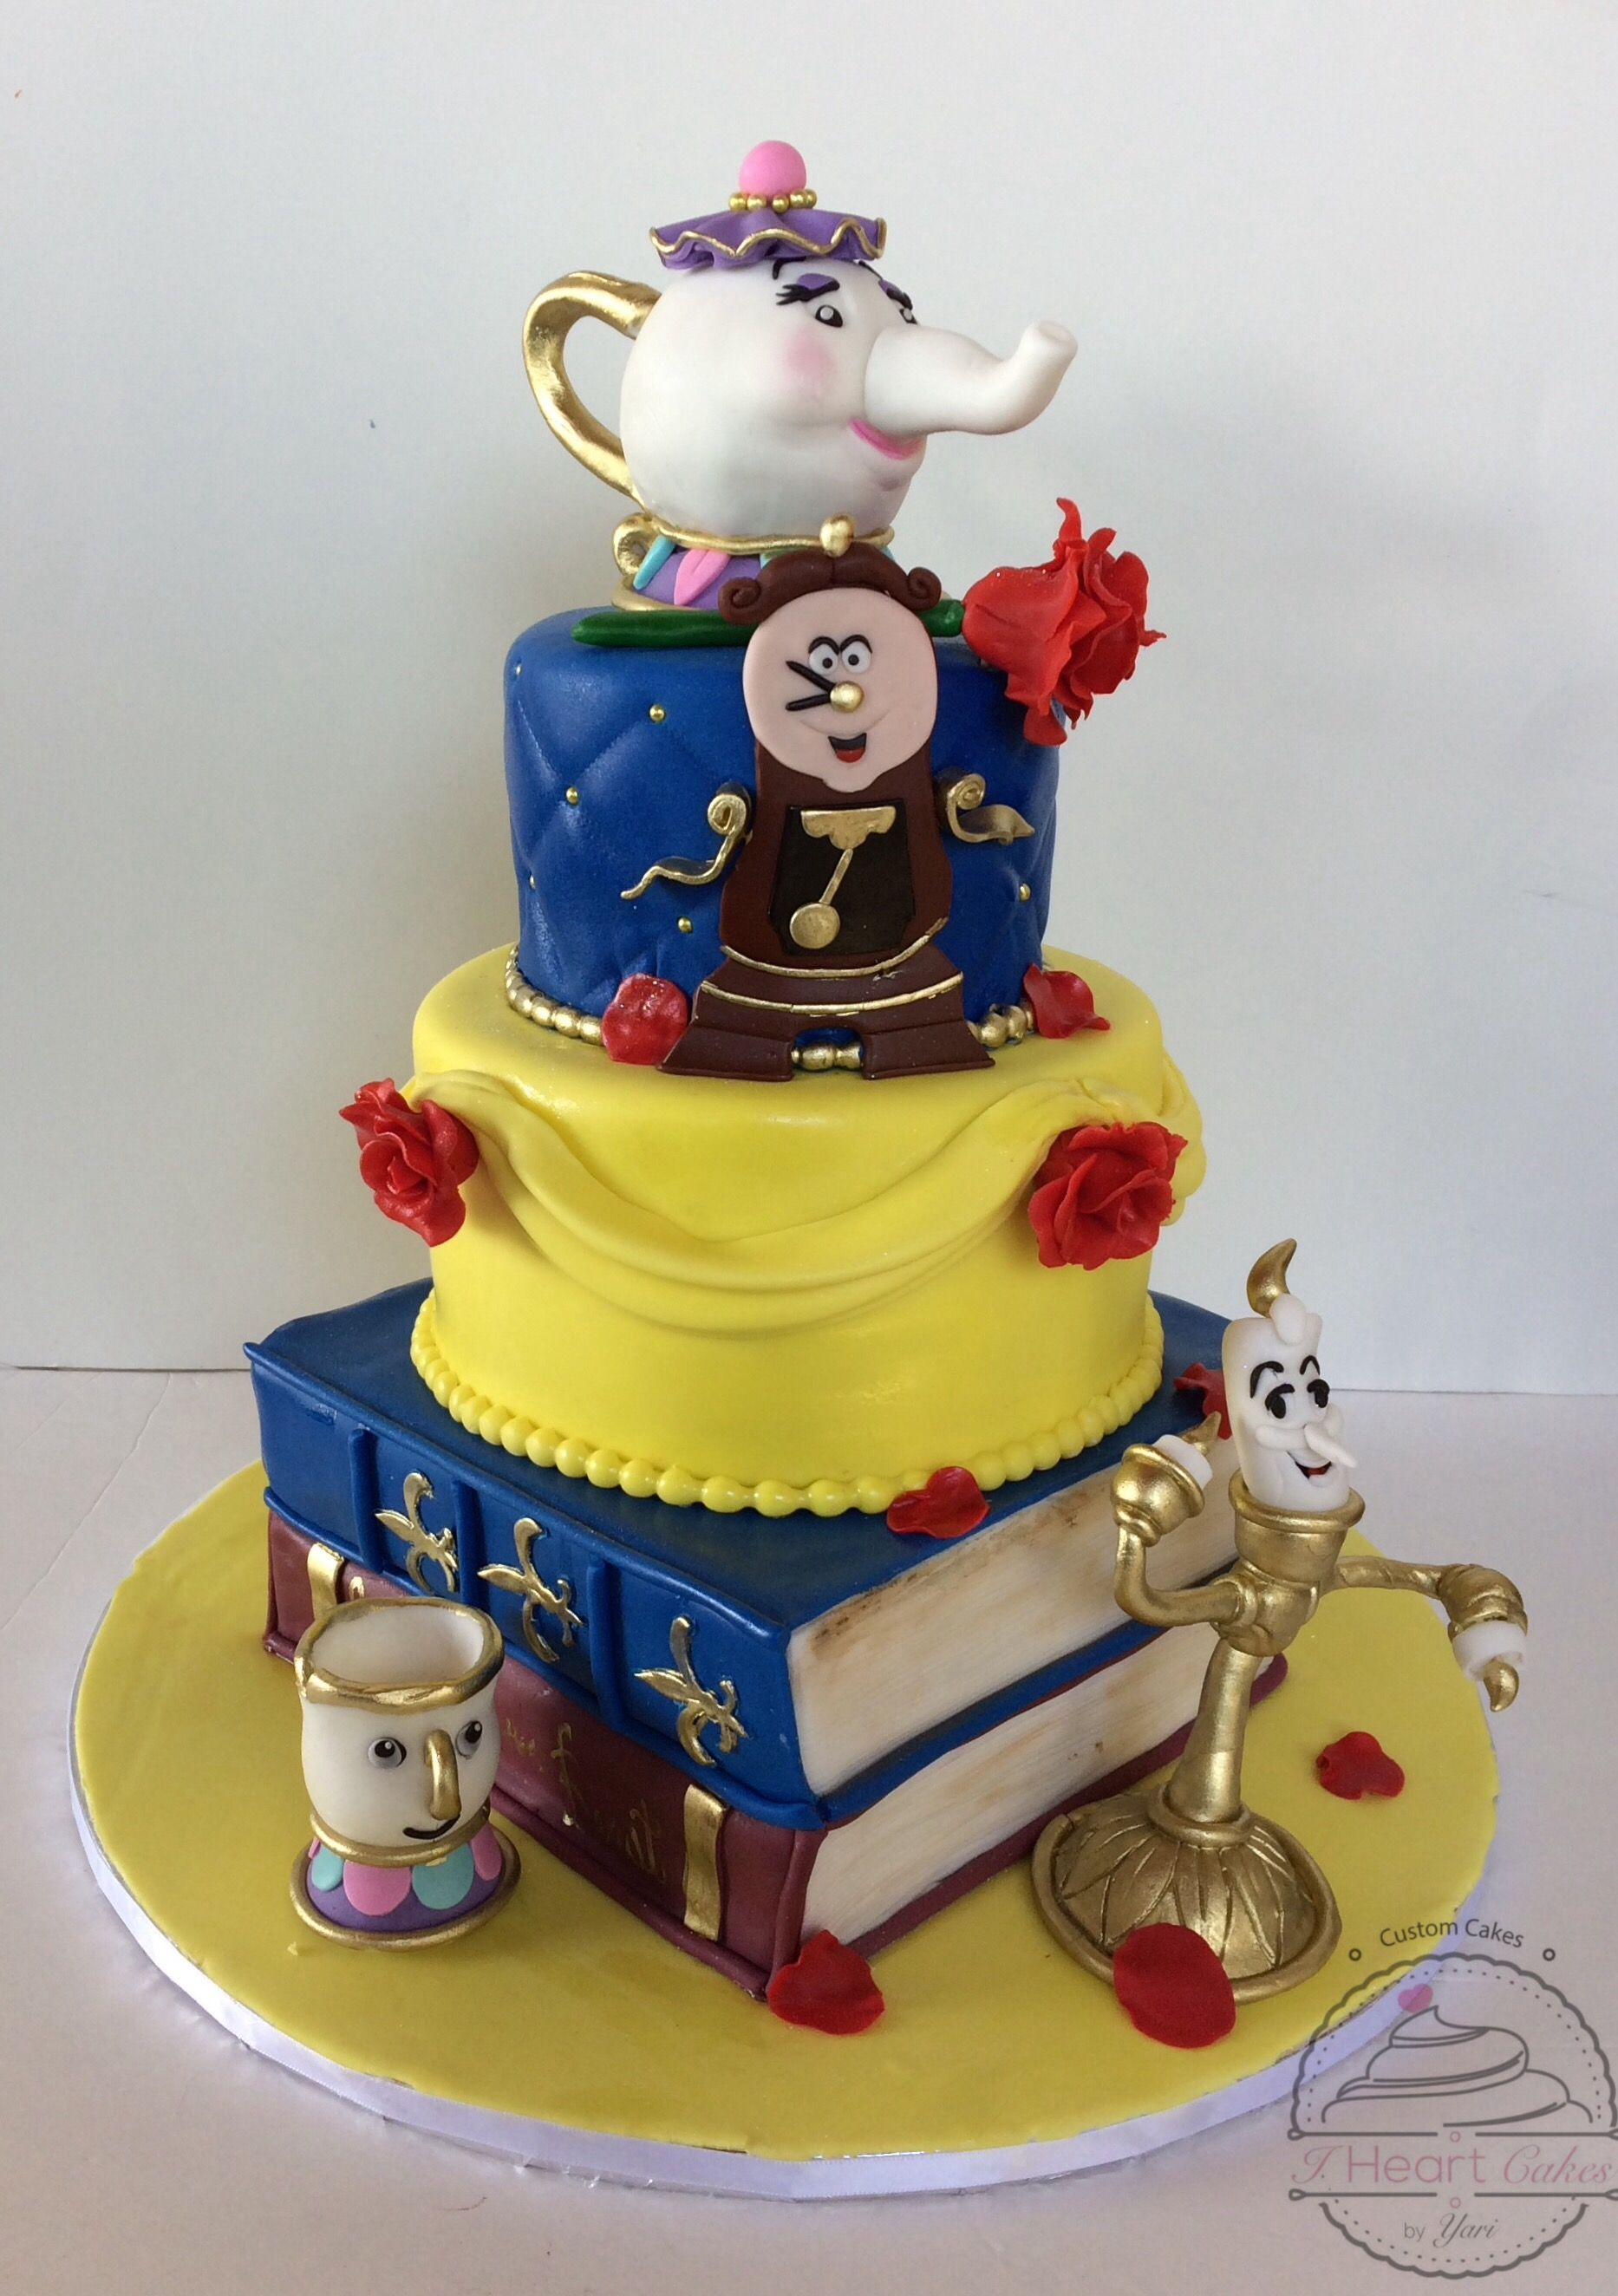 Enchanting Beauty and the Beast Cake mysite I Heart Cakes By